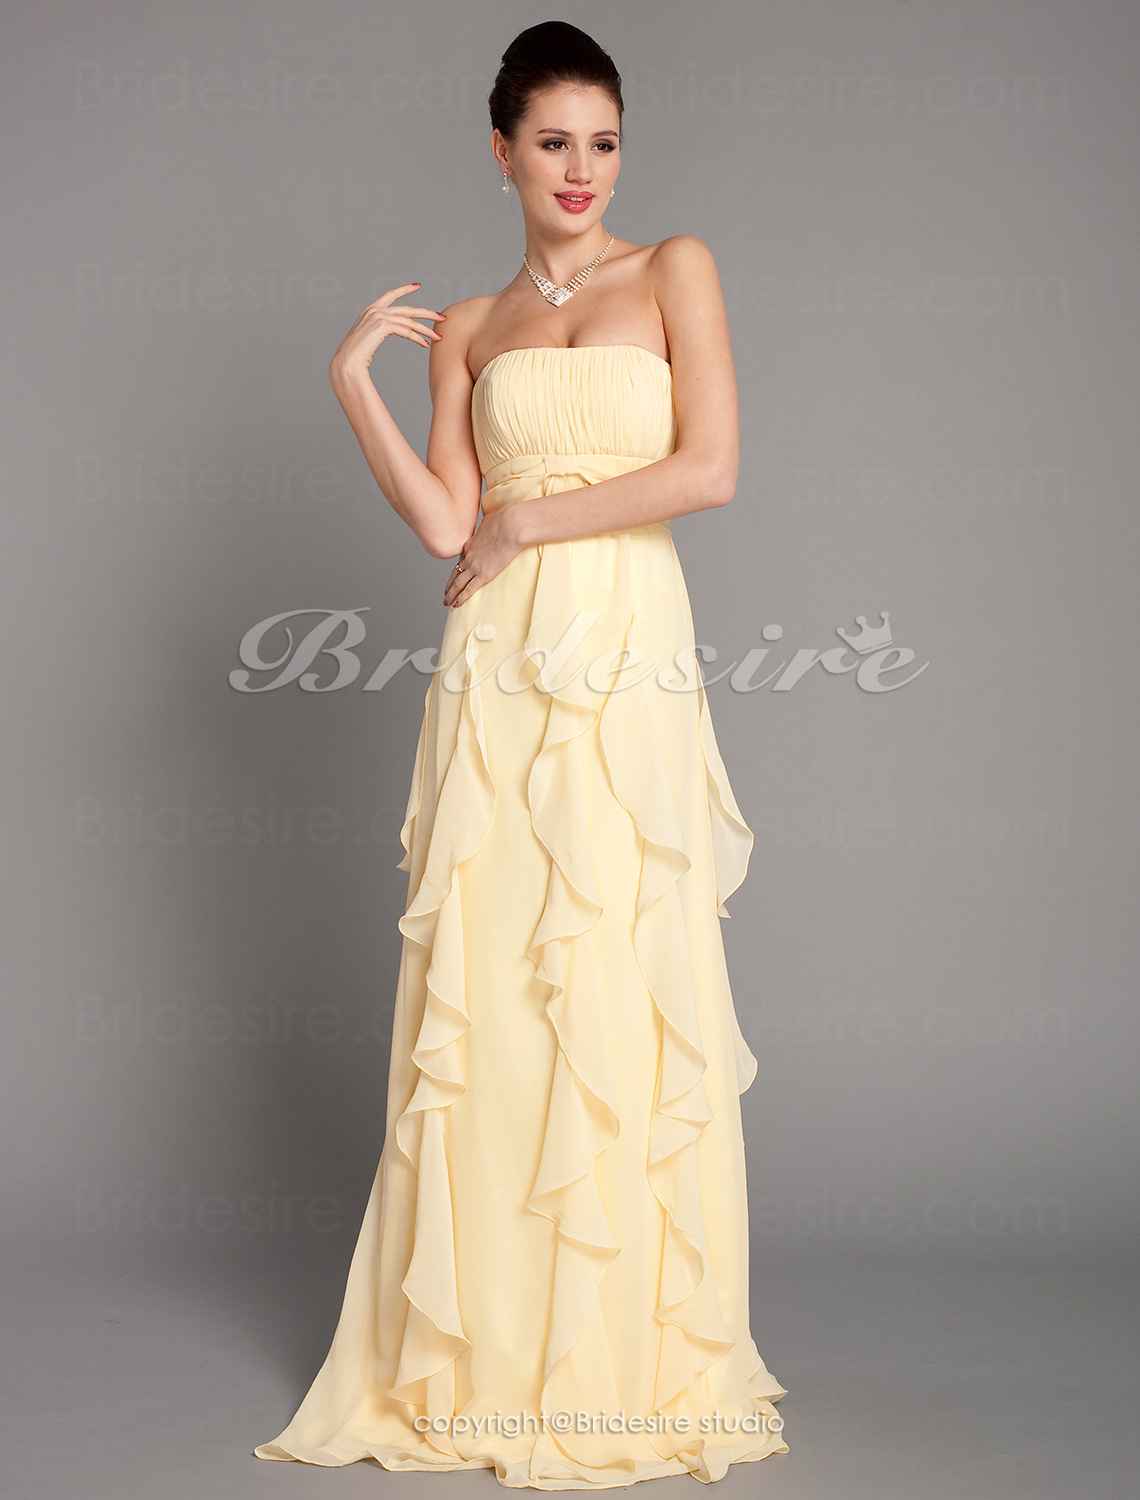 Sheath/Column Floor-length Chiffon Strapless Bridesmaid Dress